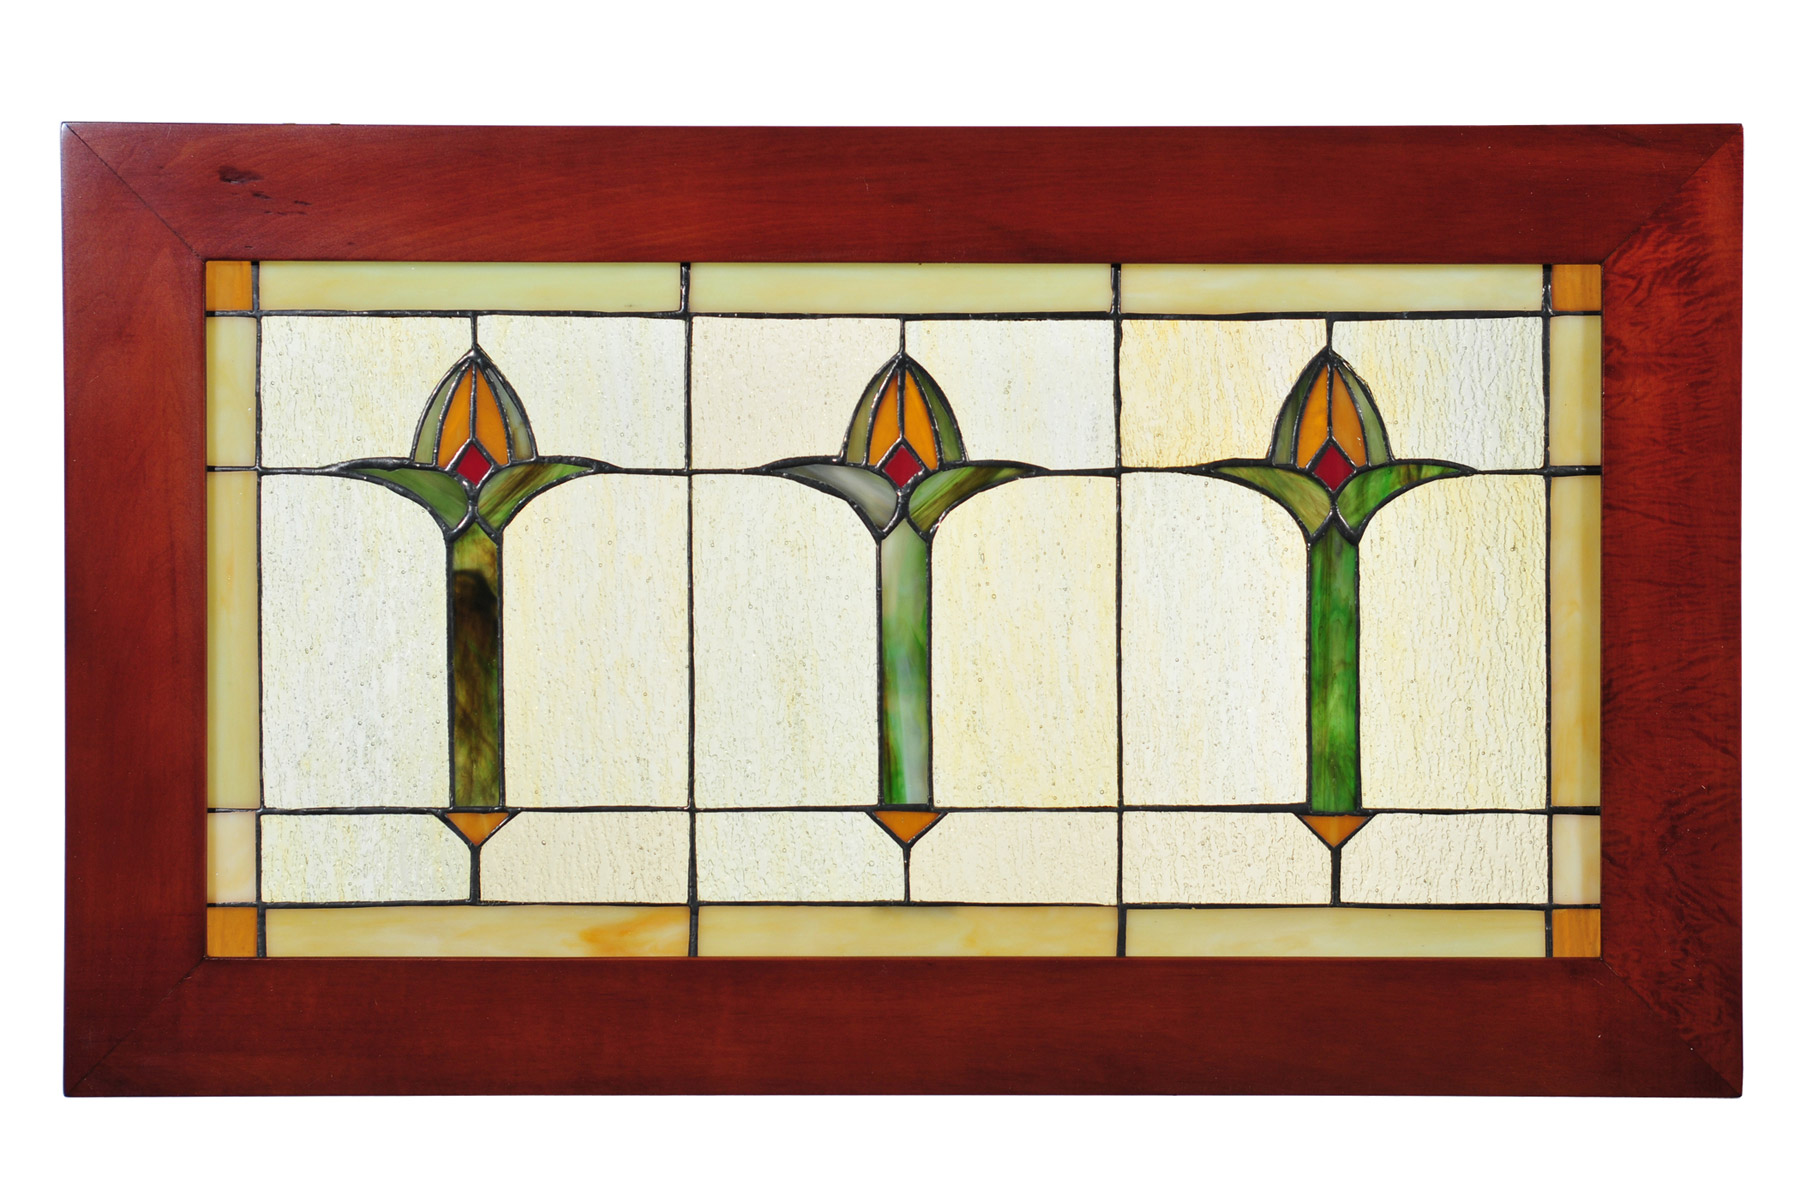 Arts and crafts style windows - Arts And Crafts Stained Glass Window Craftsman Mission Arts Crafts Bud Trio Wood Frame Stained